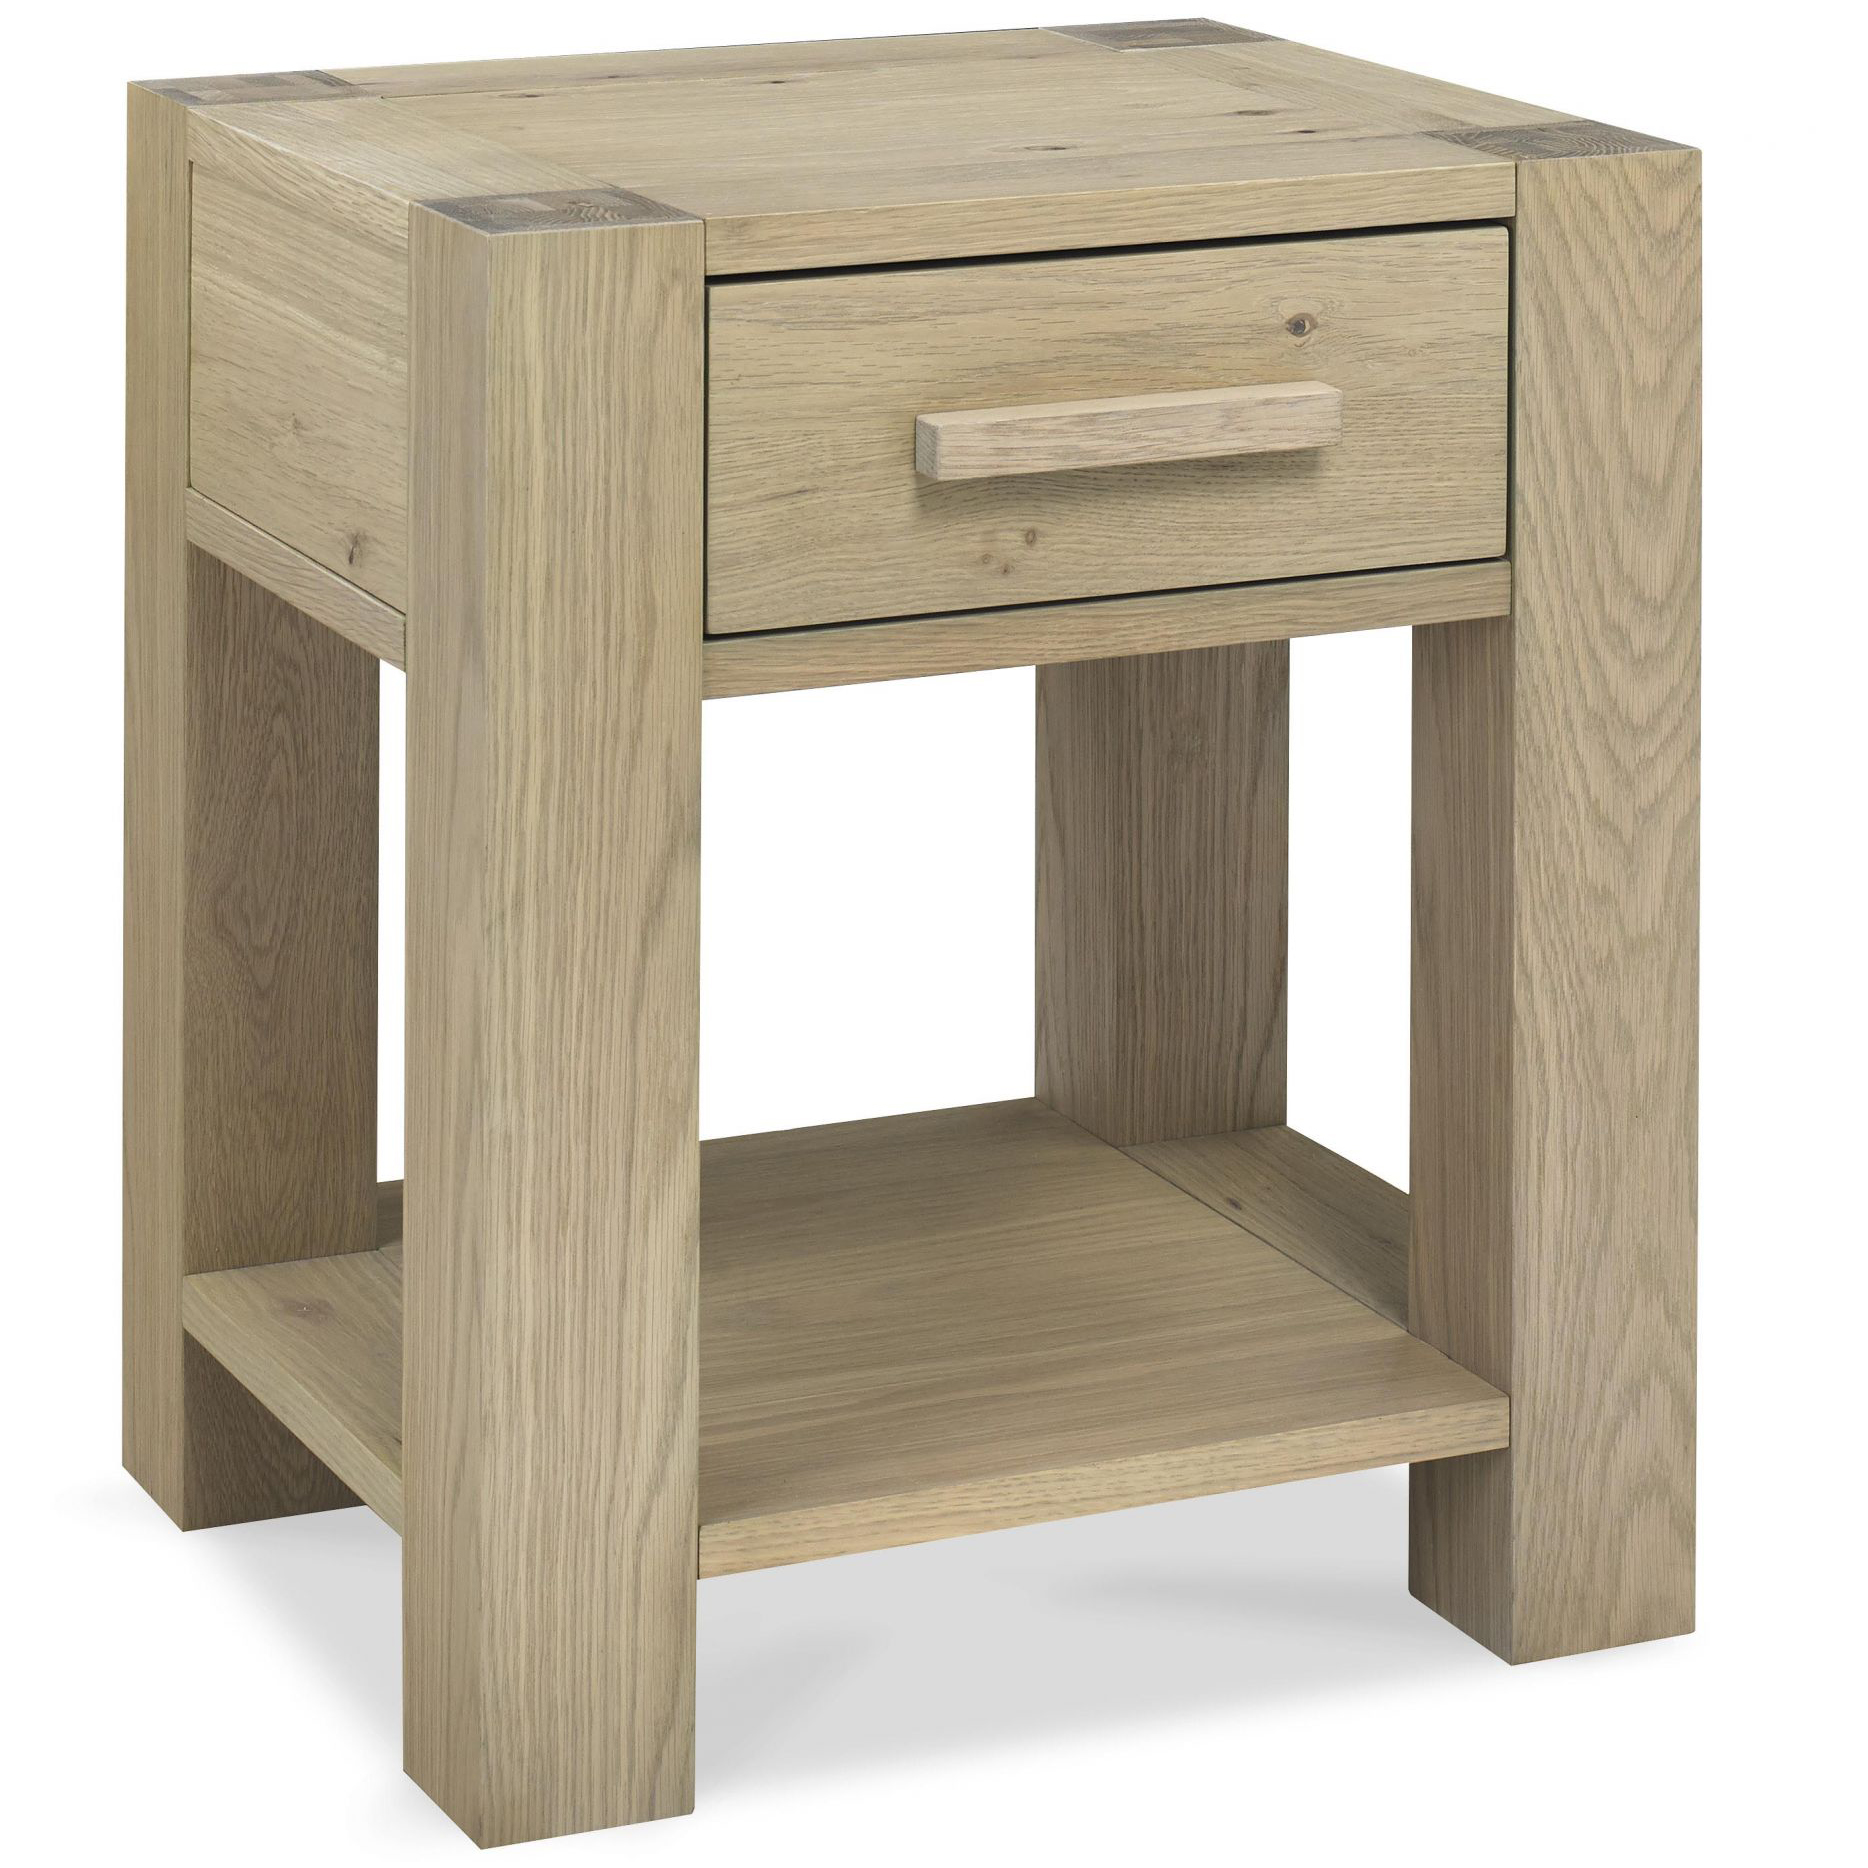 Turin aged oak lamp table with drawer the haven home interiors turin aged oak lamp table with drawer aloadofball Choice Image